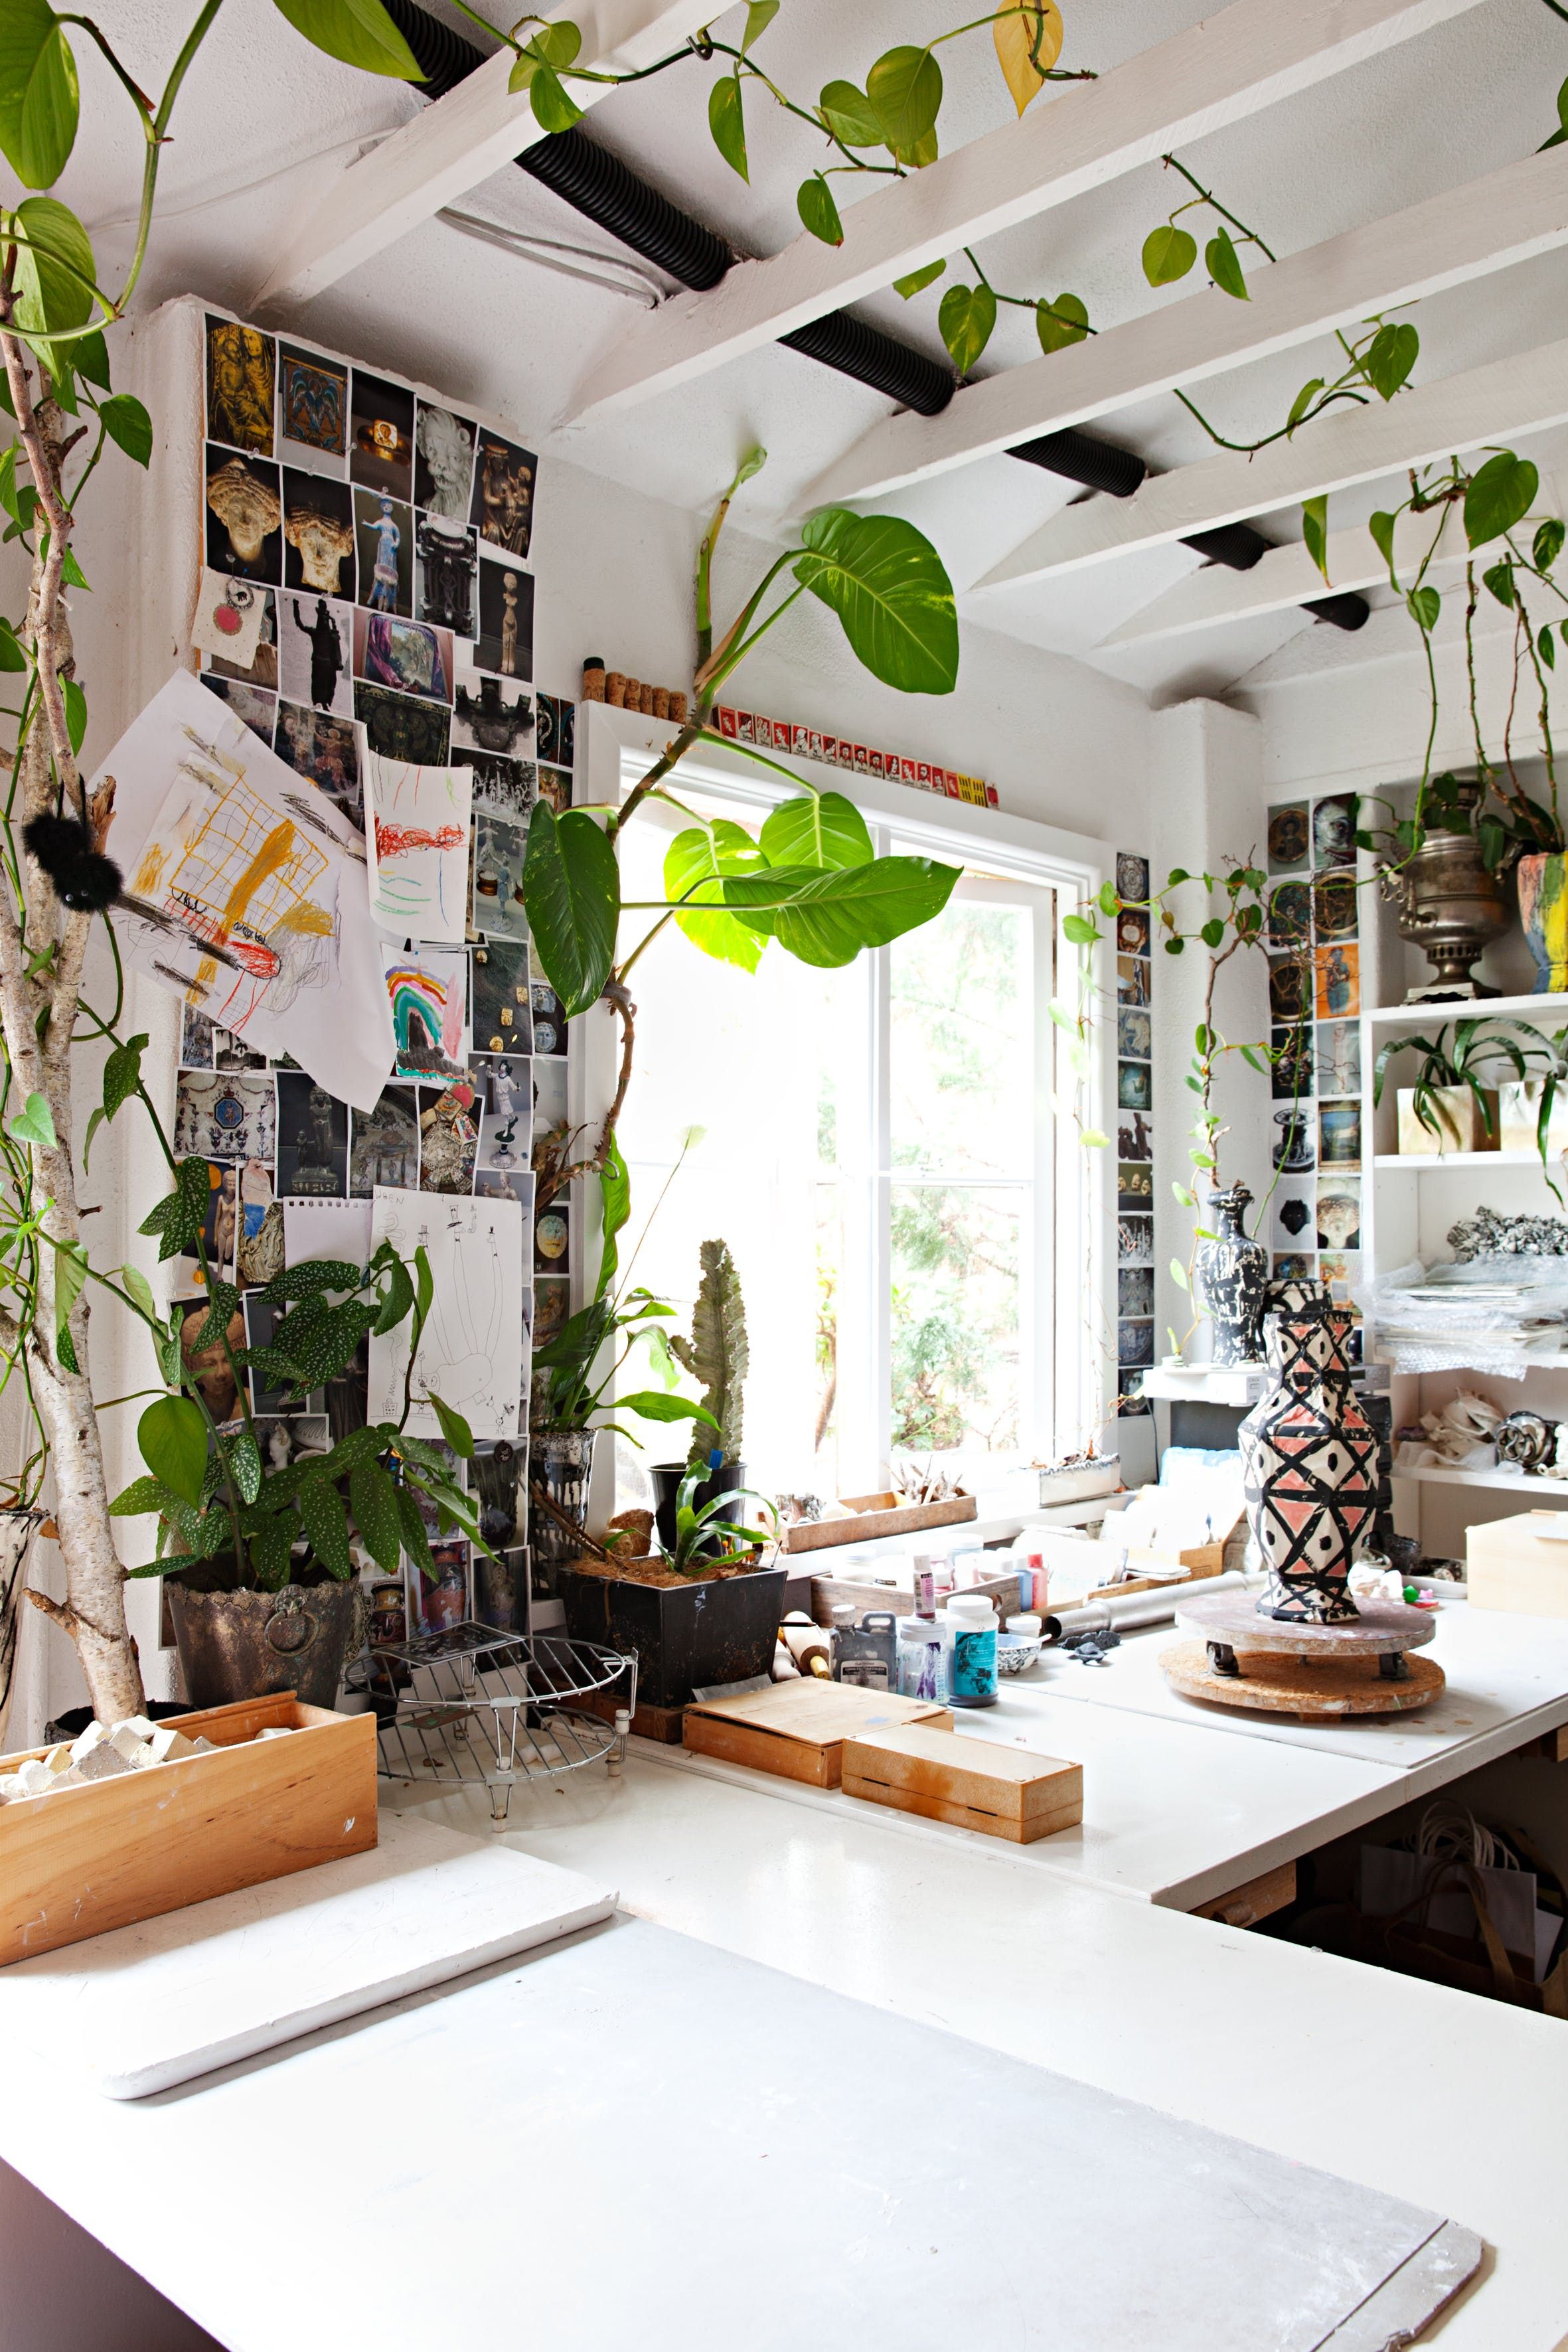 Inspiring Workspaces That Will Make You Ready To Take On